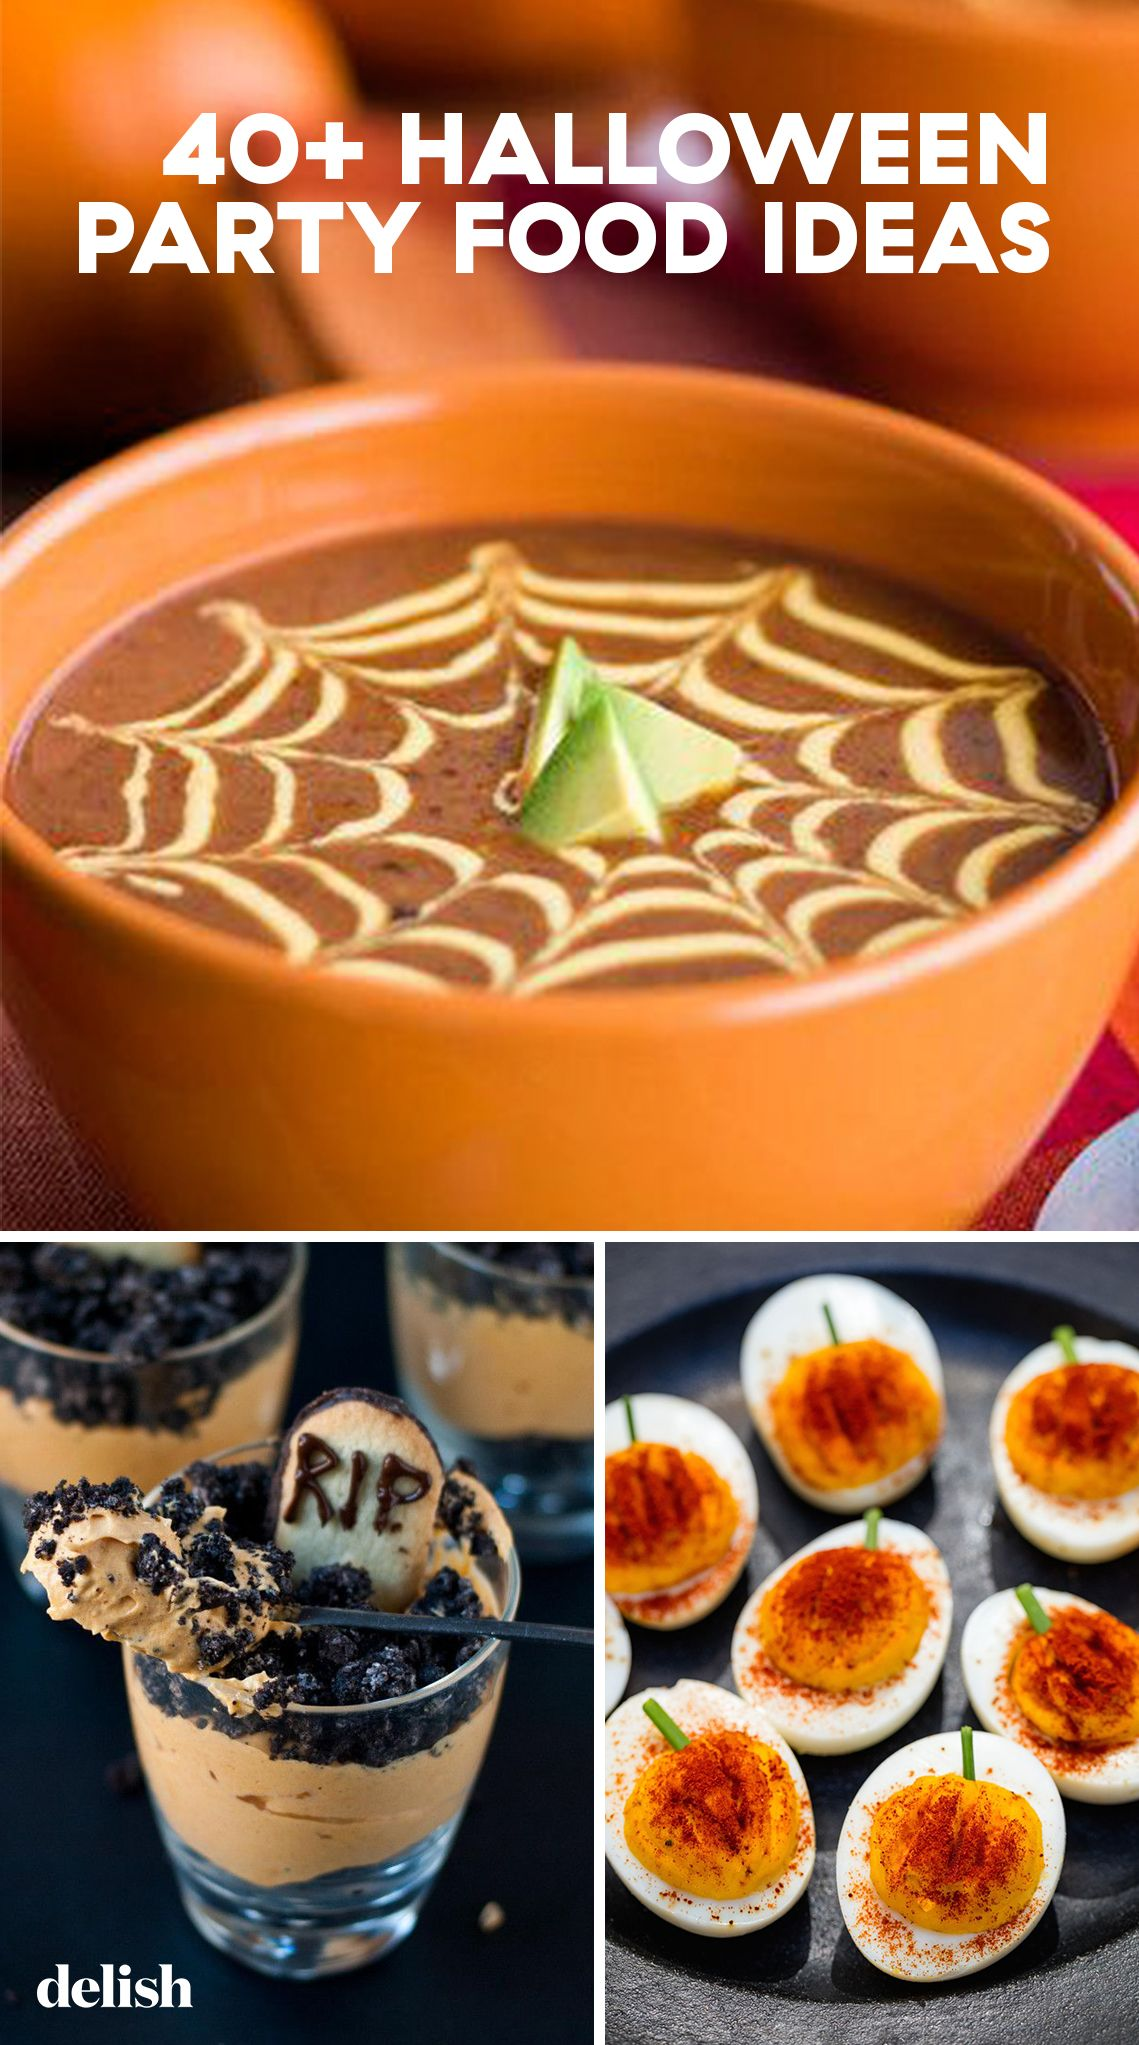 50+ adult halloween party ideas - halloween food for adults—delish